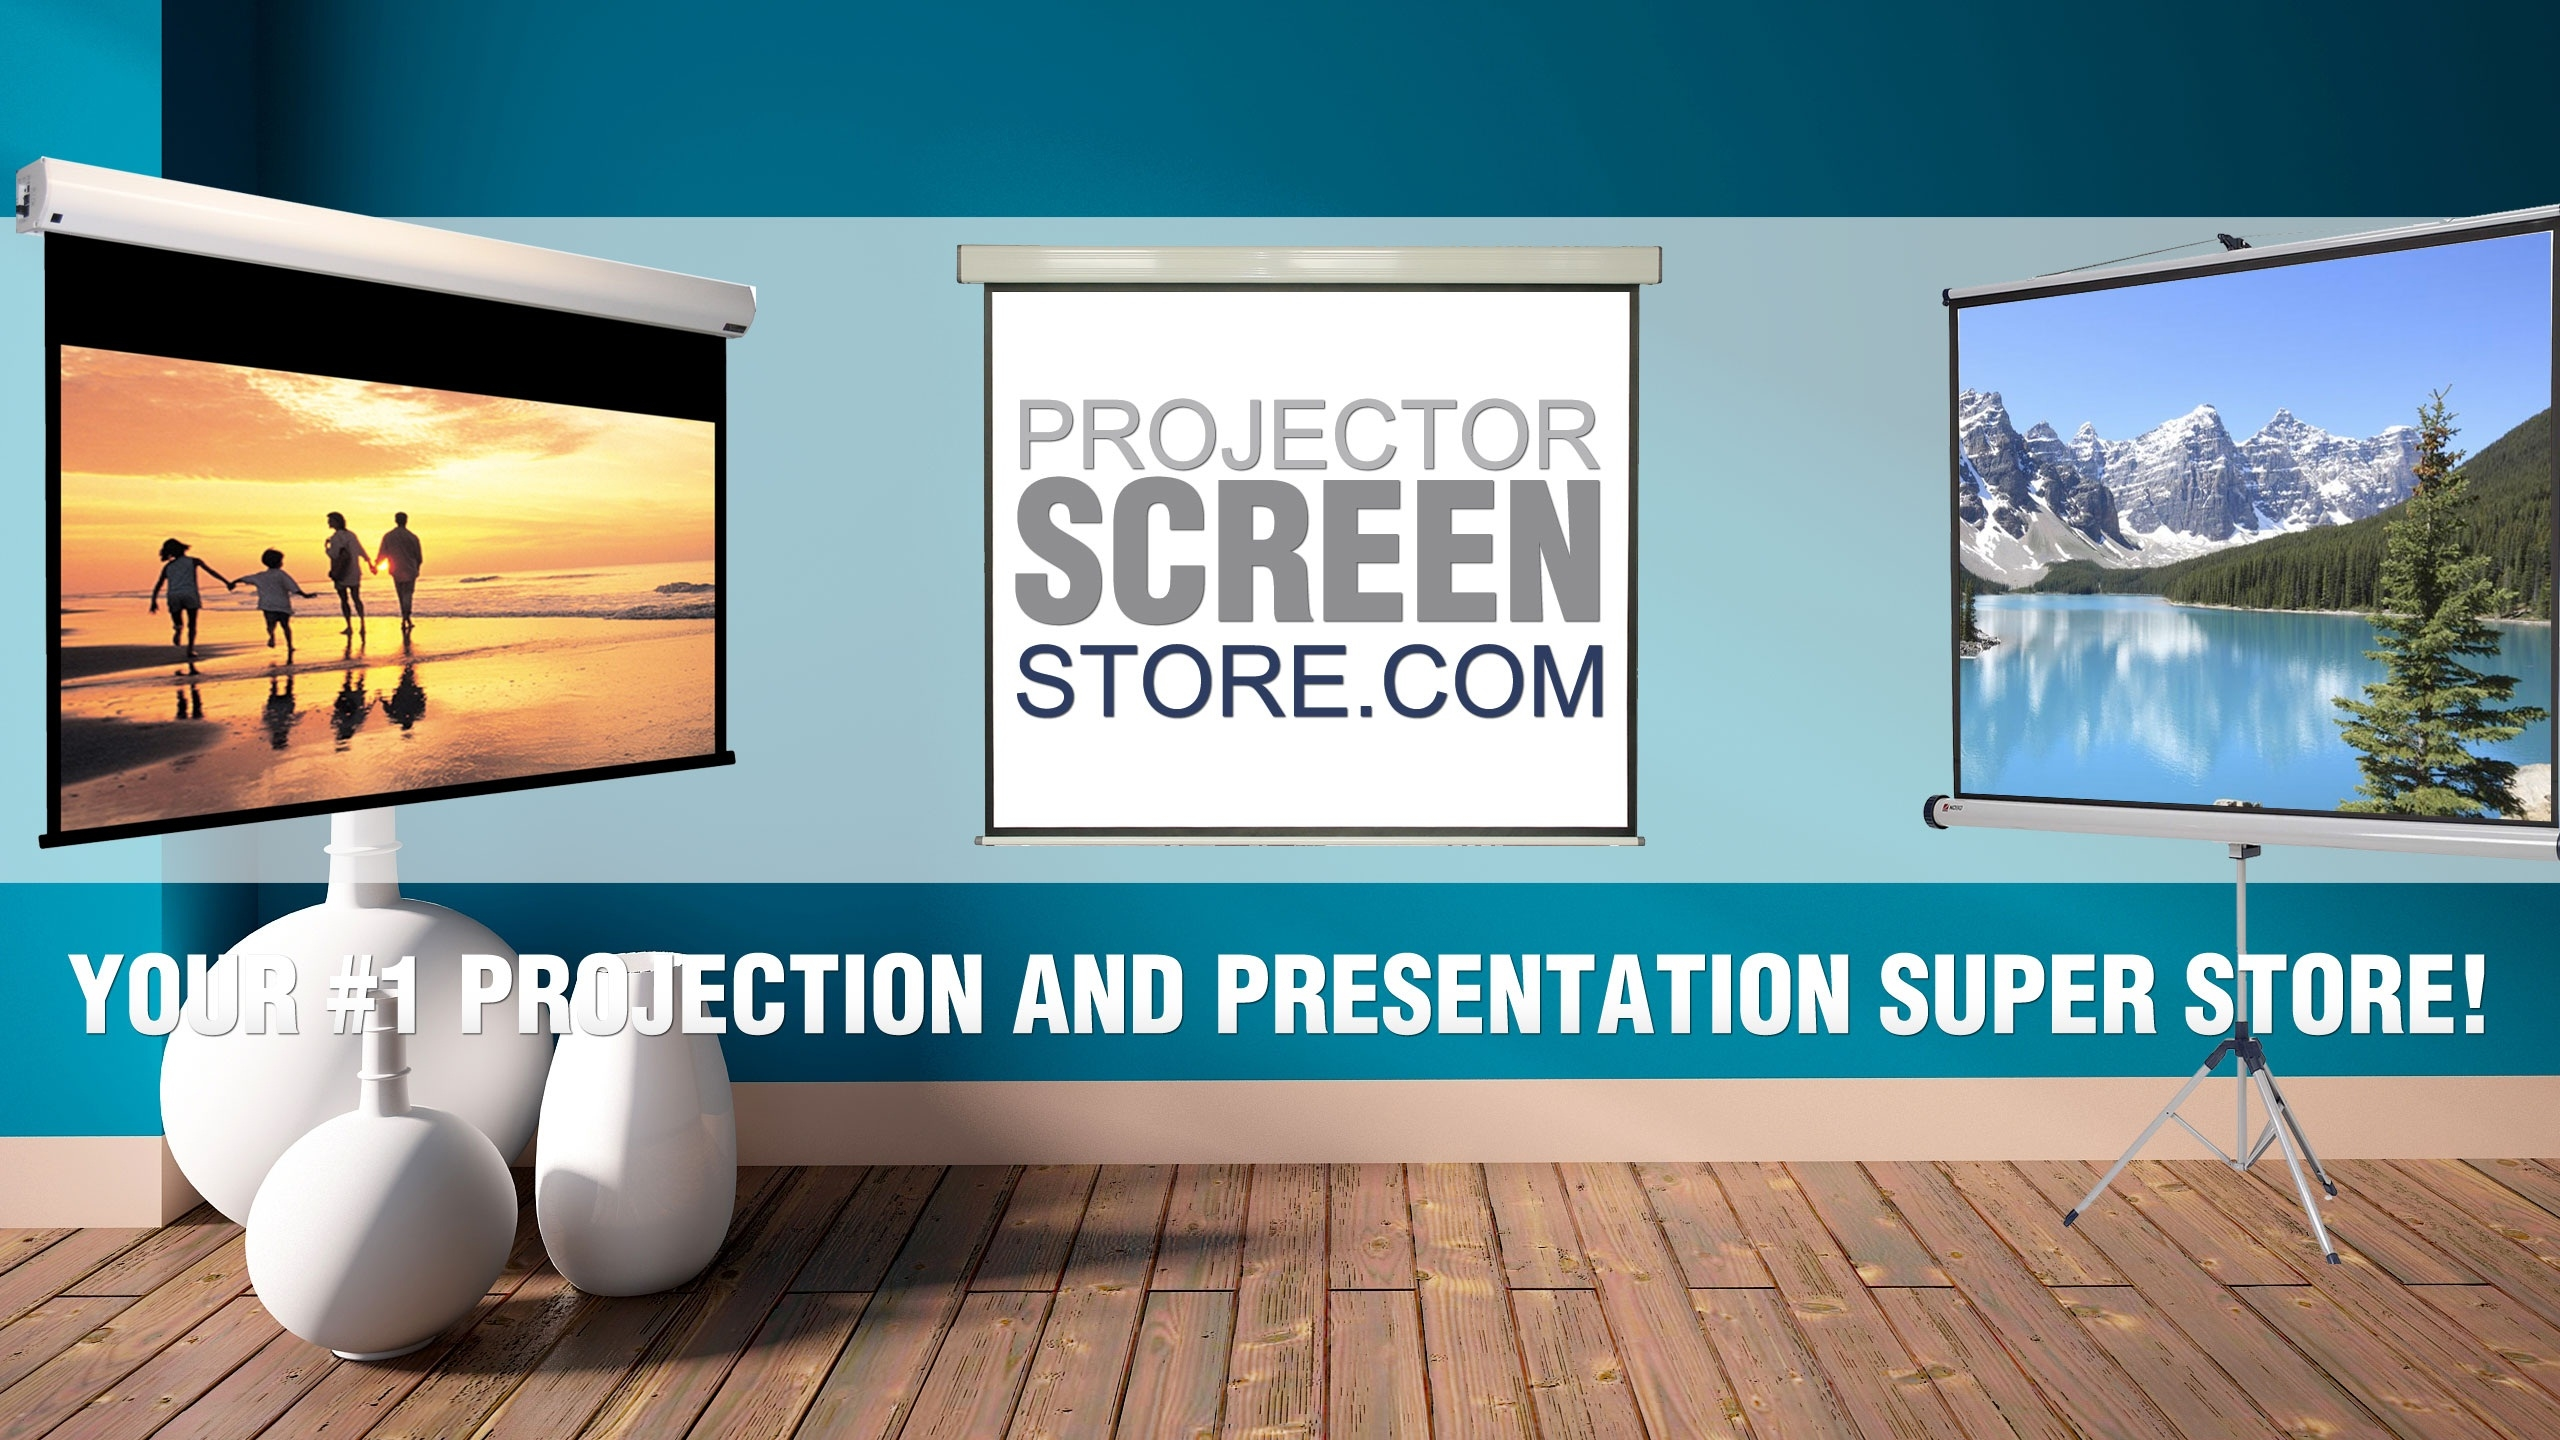 Projector Screen Store image 1